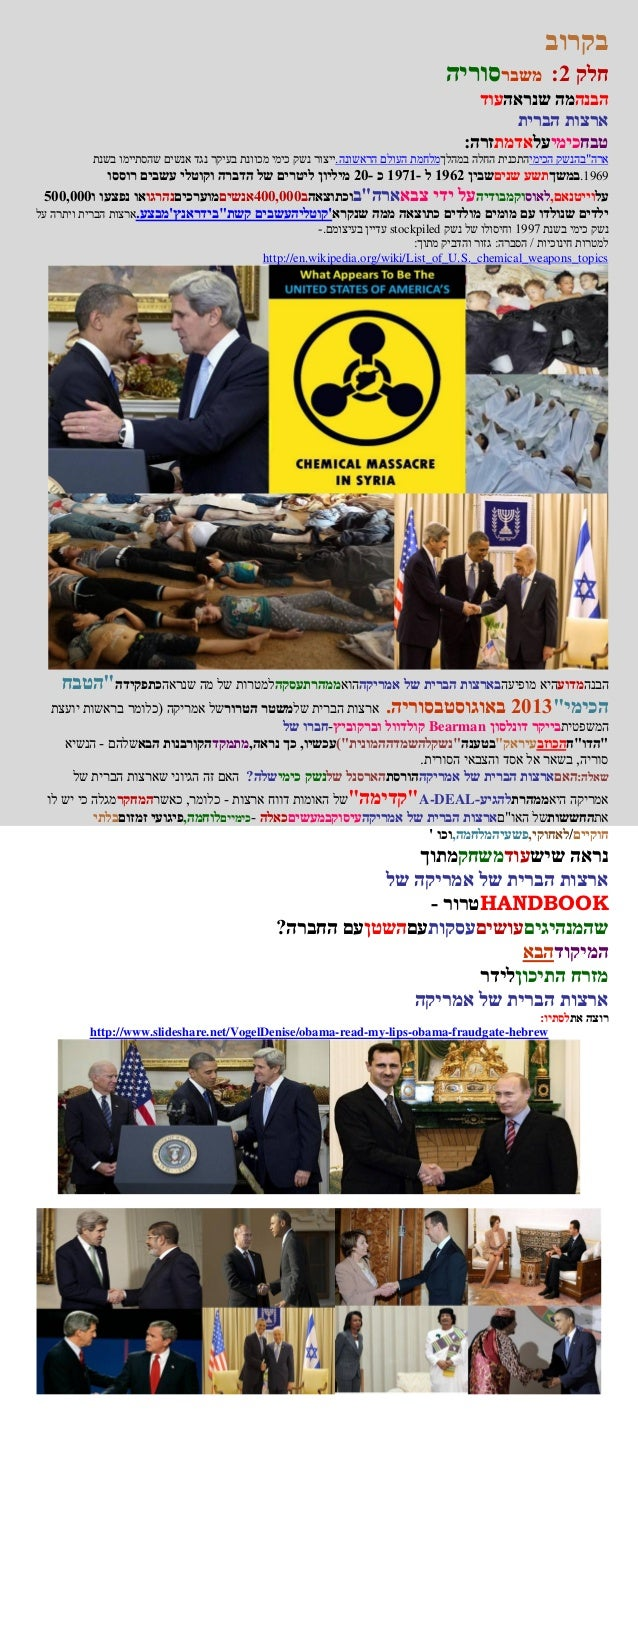 SYRIA CRISIS - (USA) CHEMICAL WEAPONS ATTACK (hebrew)